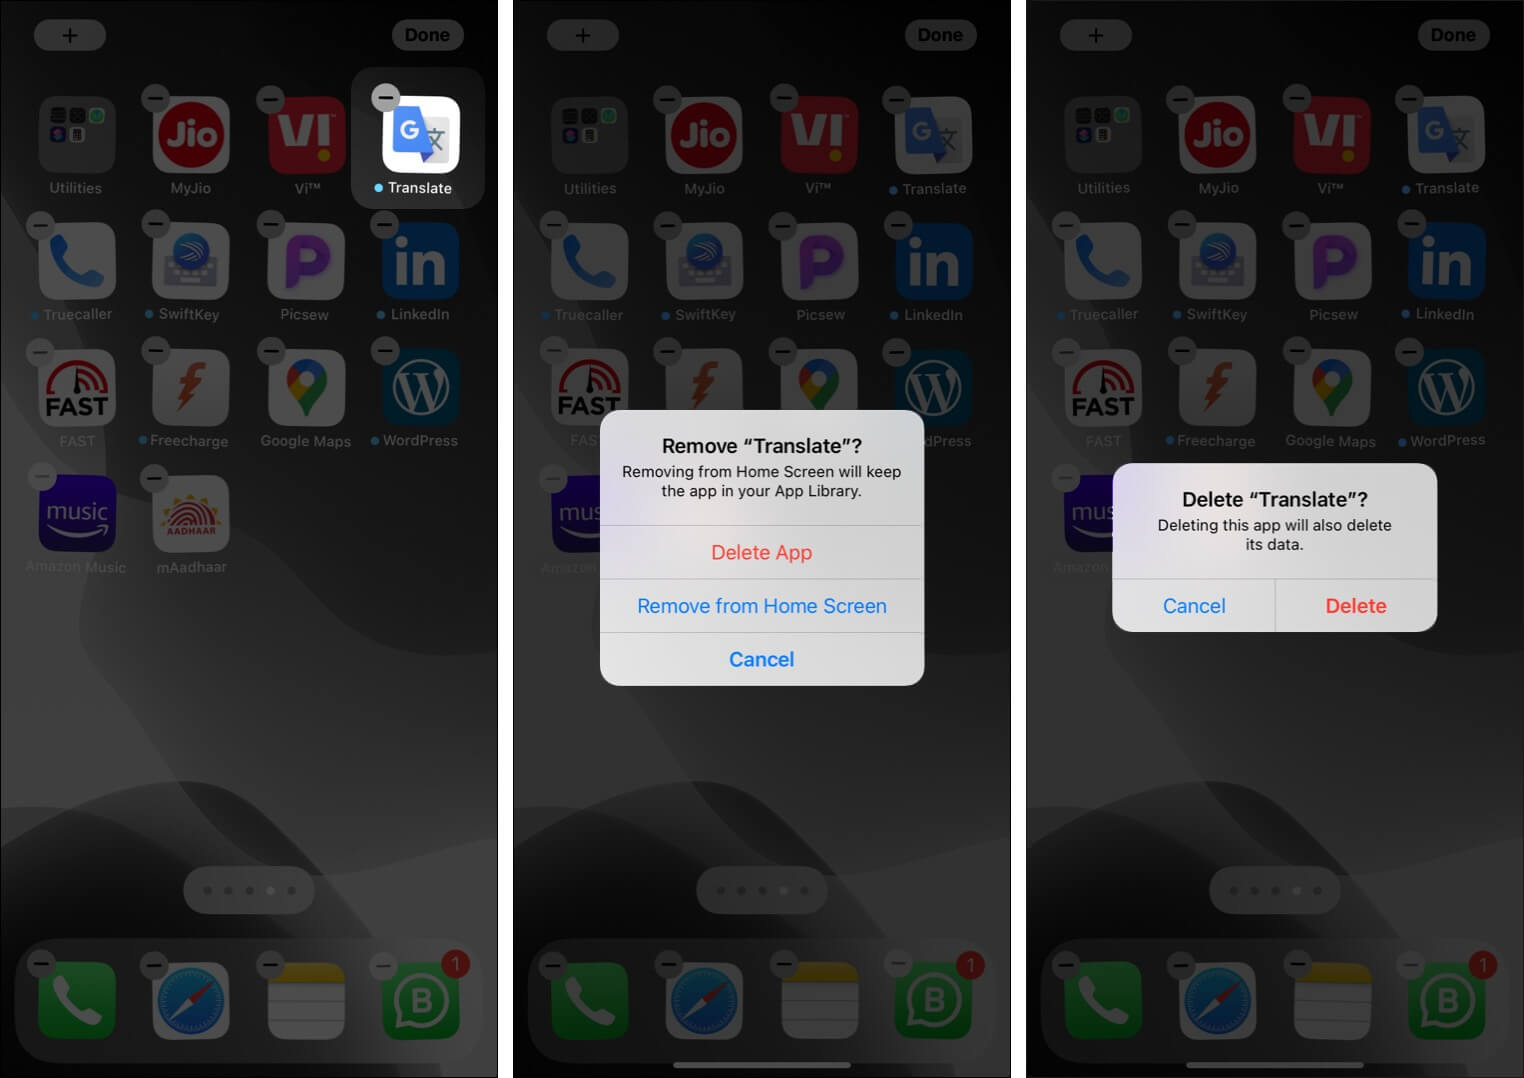 Delete apps on iPhone in iOS 14